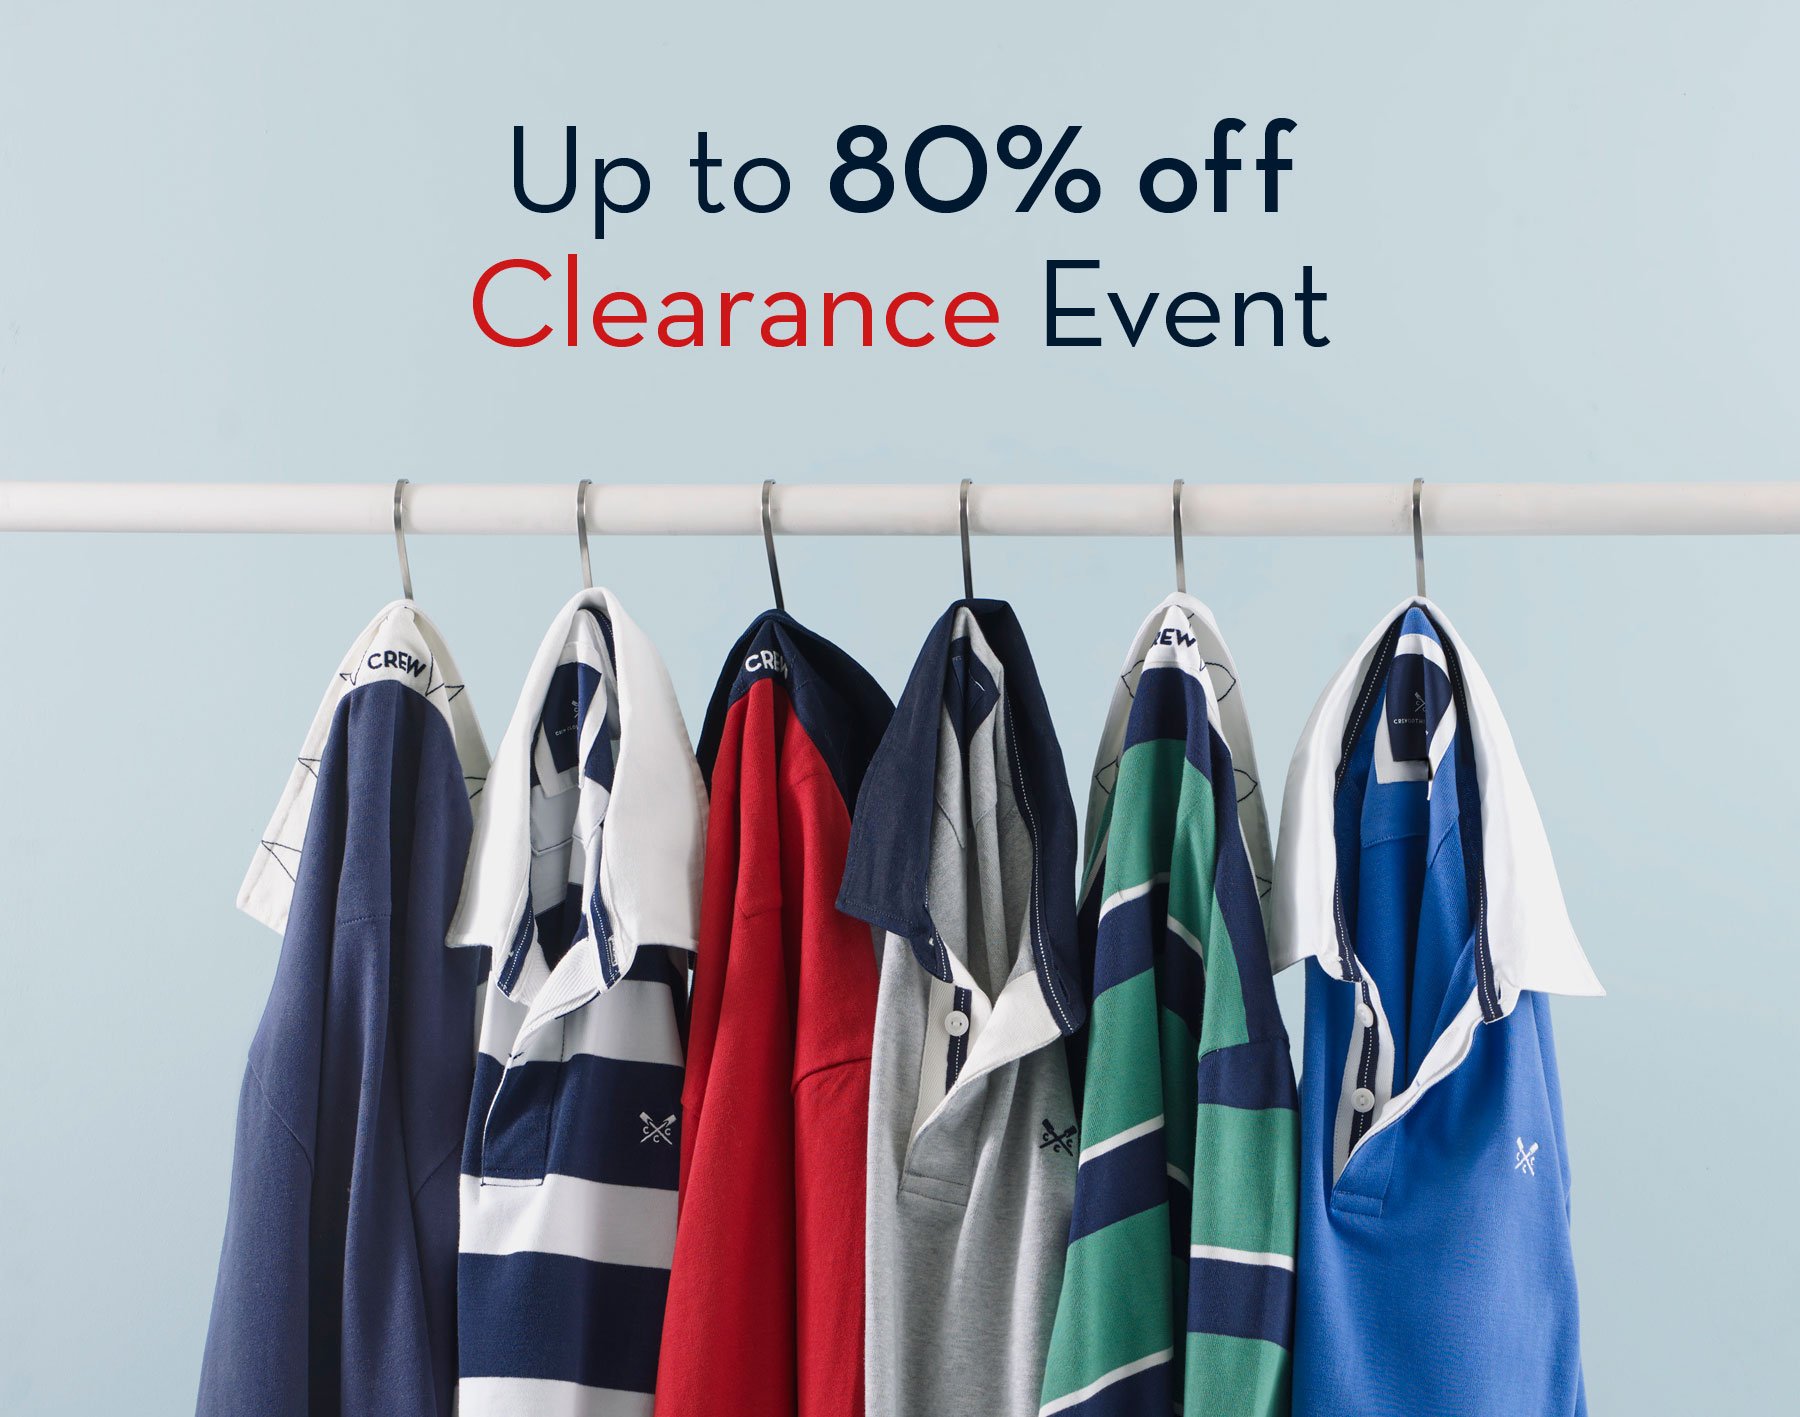 Clearance Events